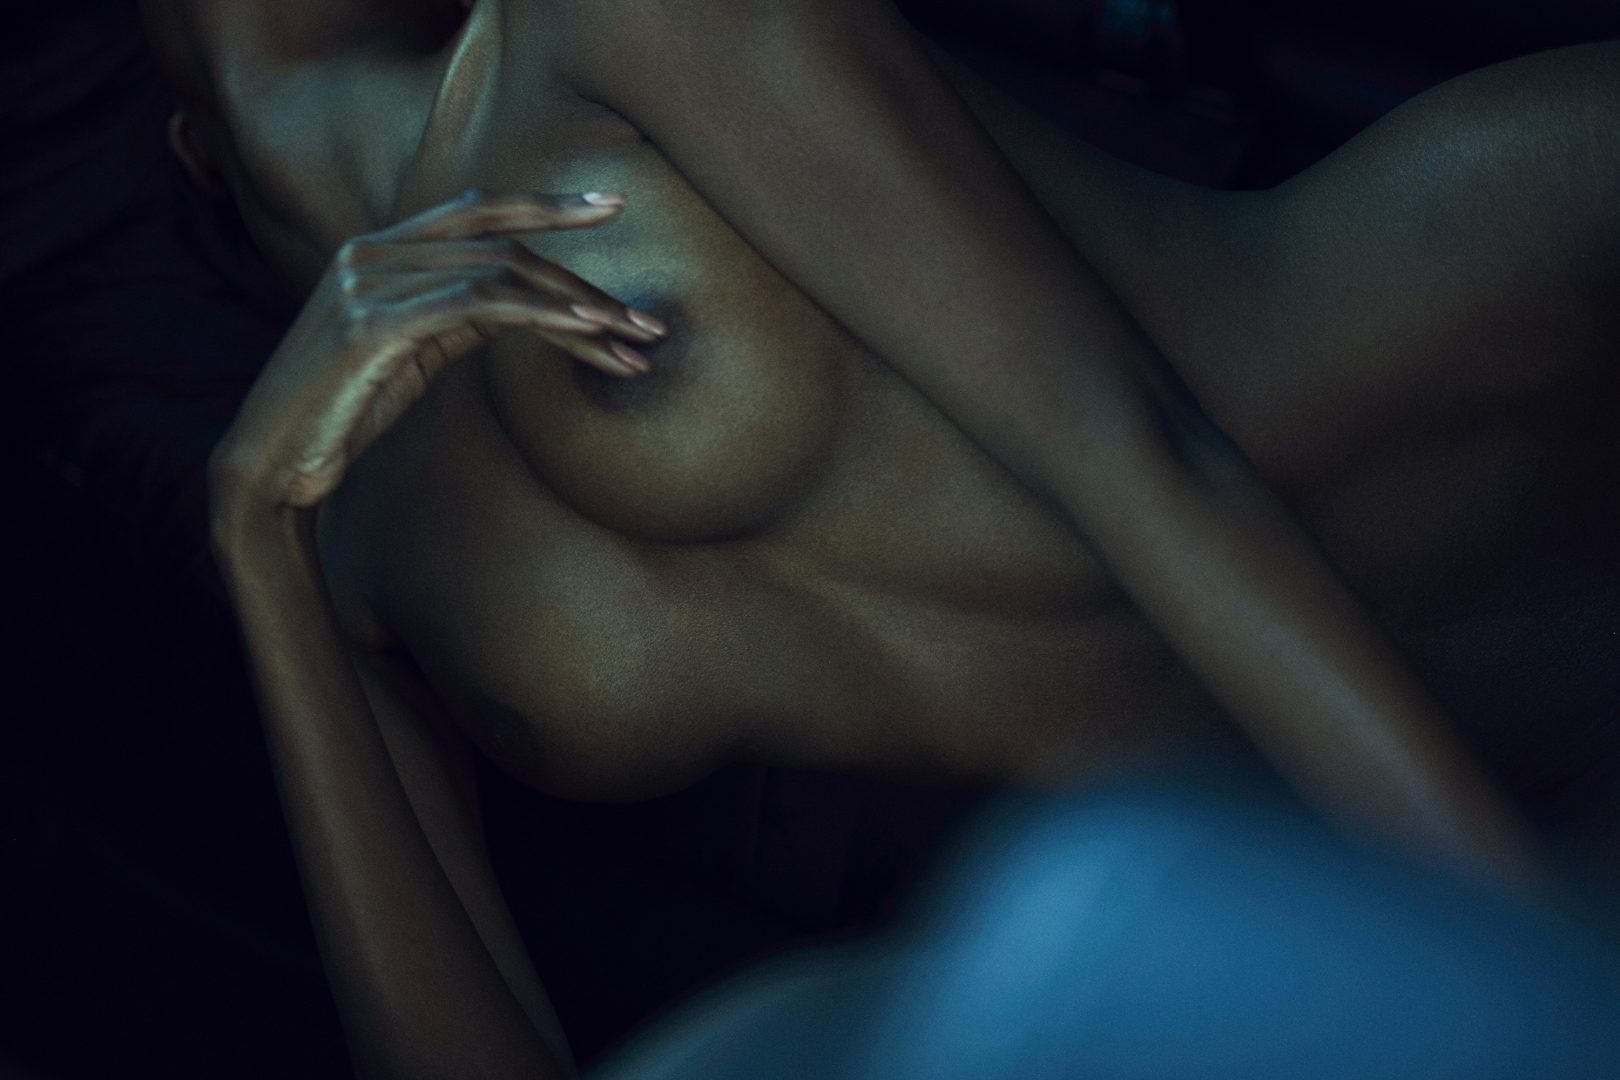 Body close up from naked girl in a car by Stefan Rappo